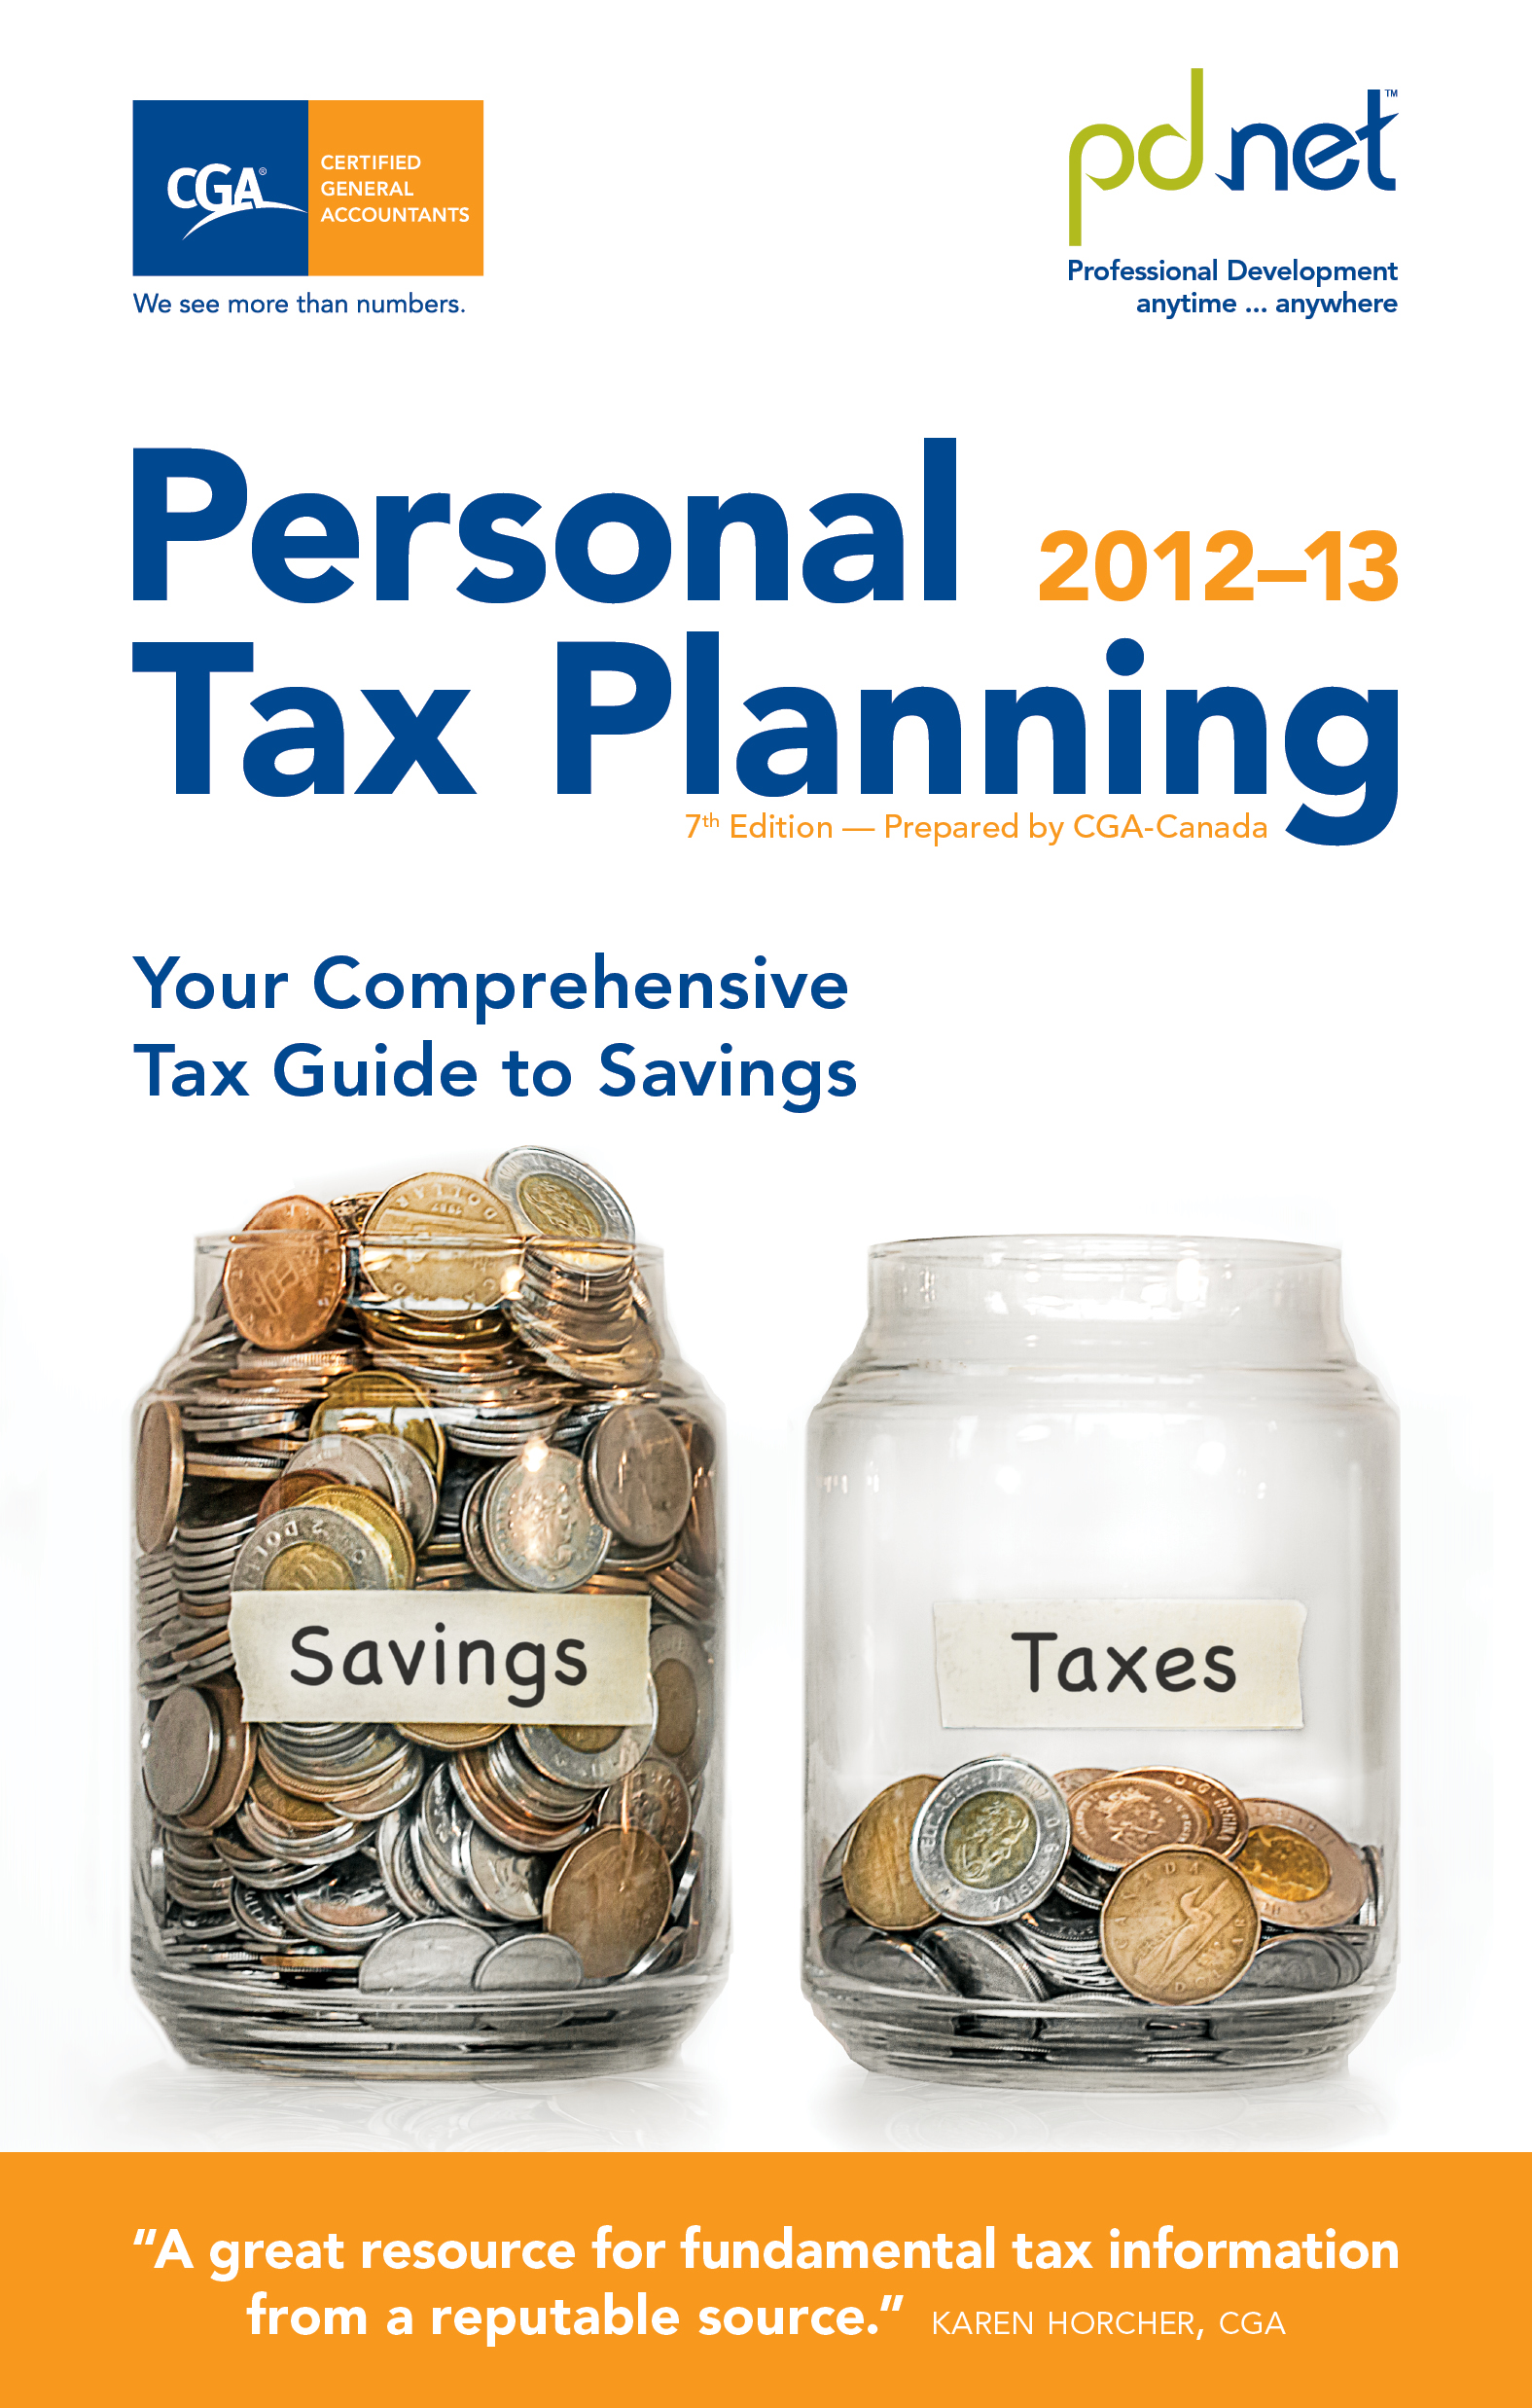 Personal Tax Planning 2012-13: Your Comprehensive Tax Guide to Savings